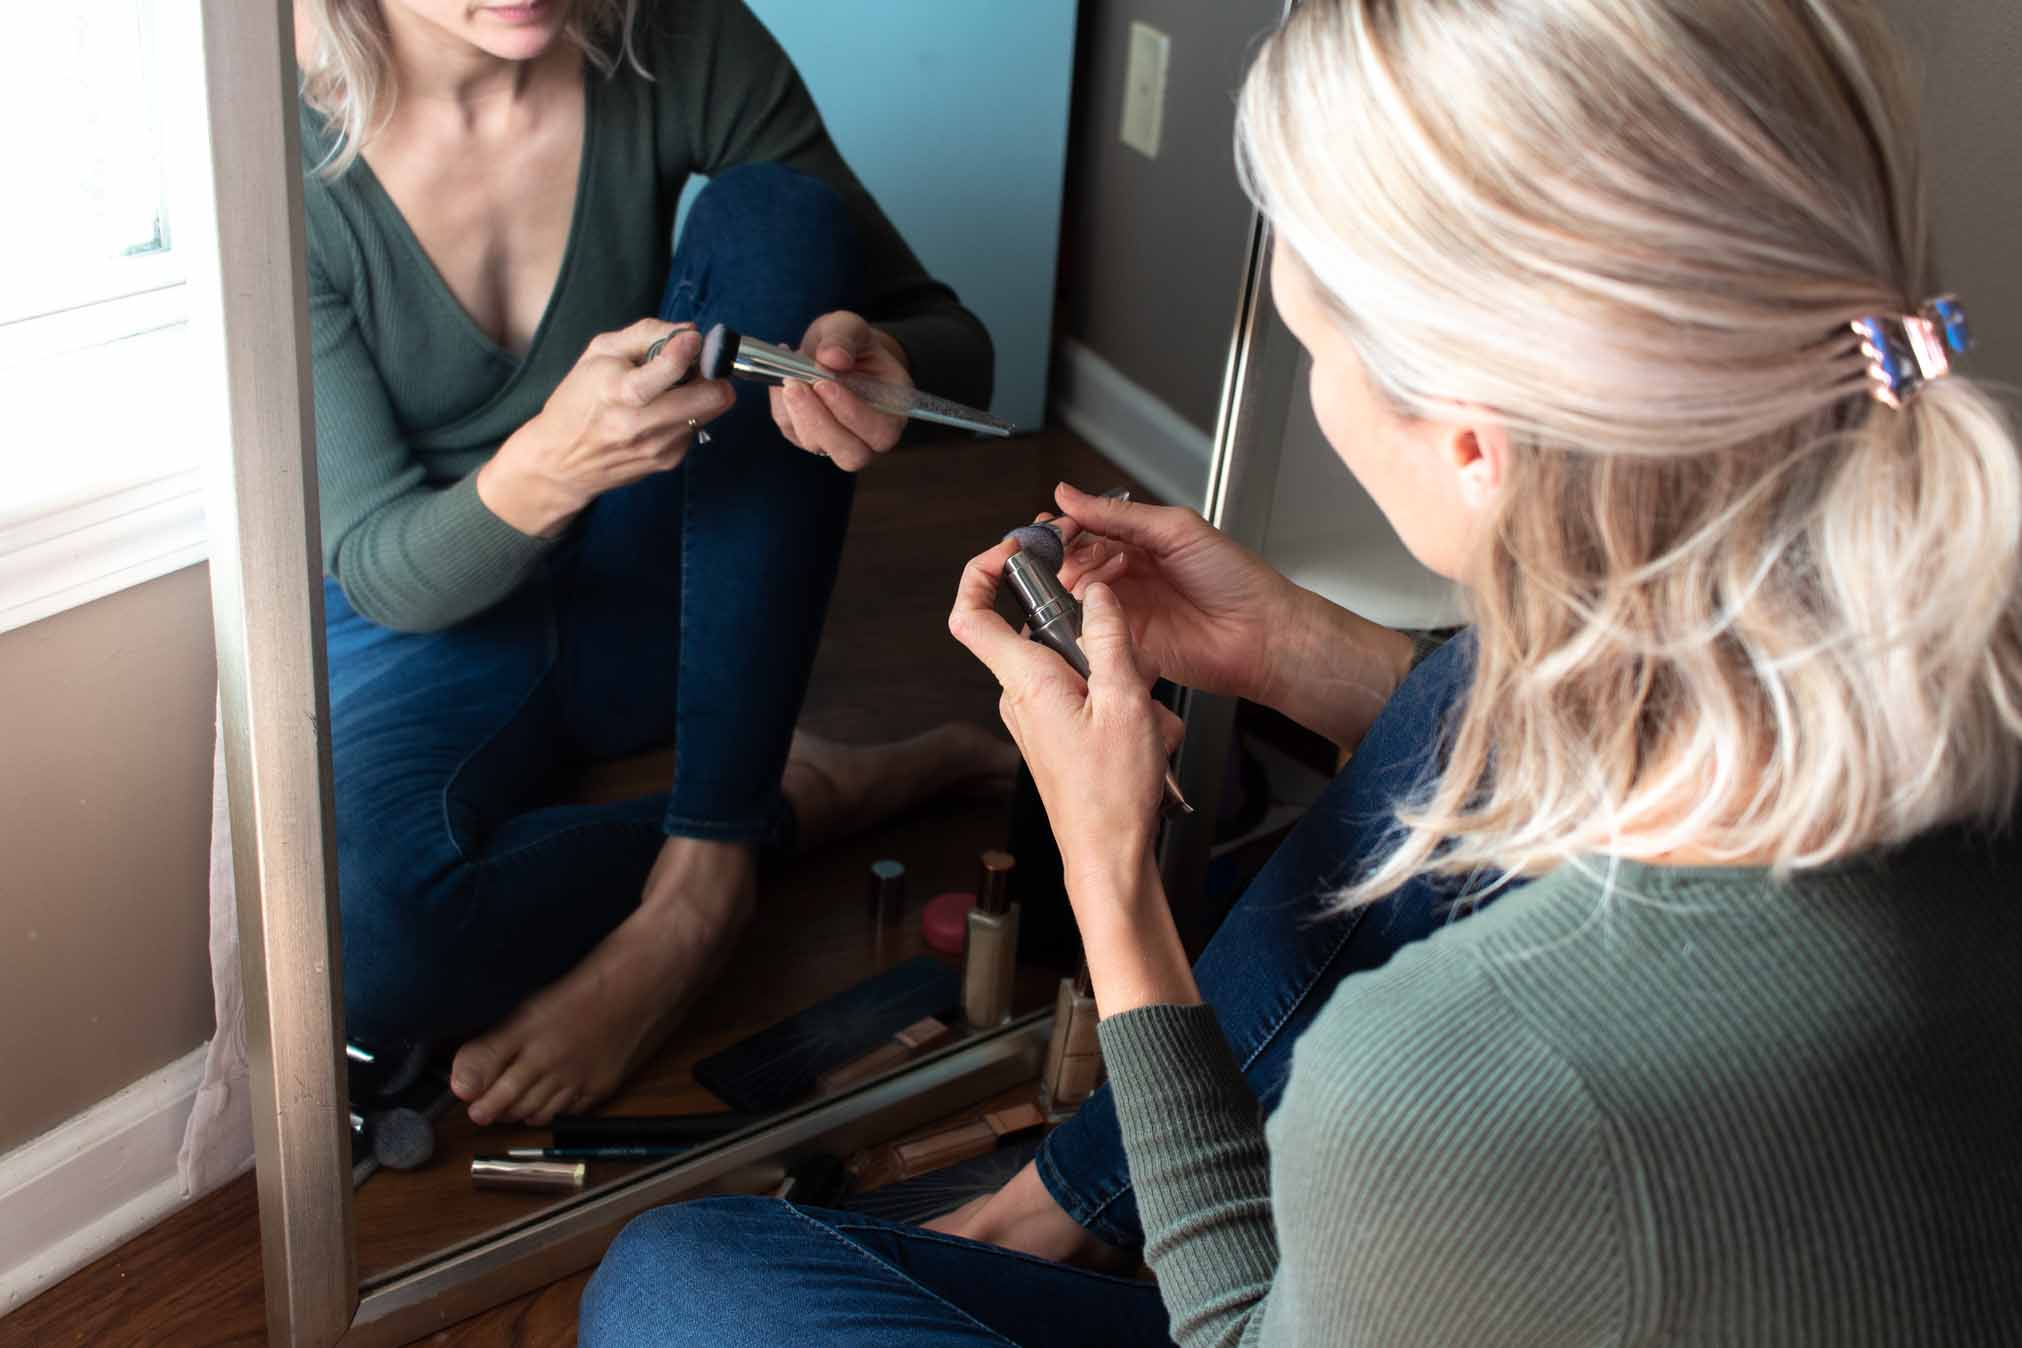 For shopping & applying makeup, I take the easy way out (WHO HAS TIME FOR THAT??!) I always reorder the same tried-&-true products -- the 1s I trust to do their thang.